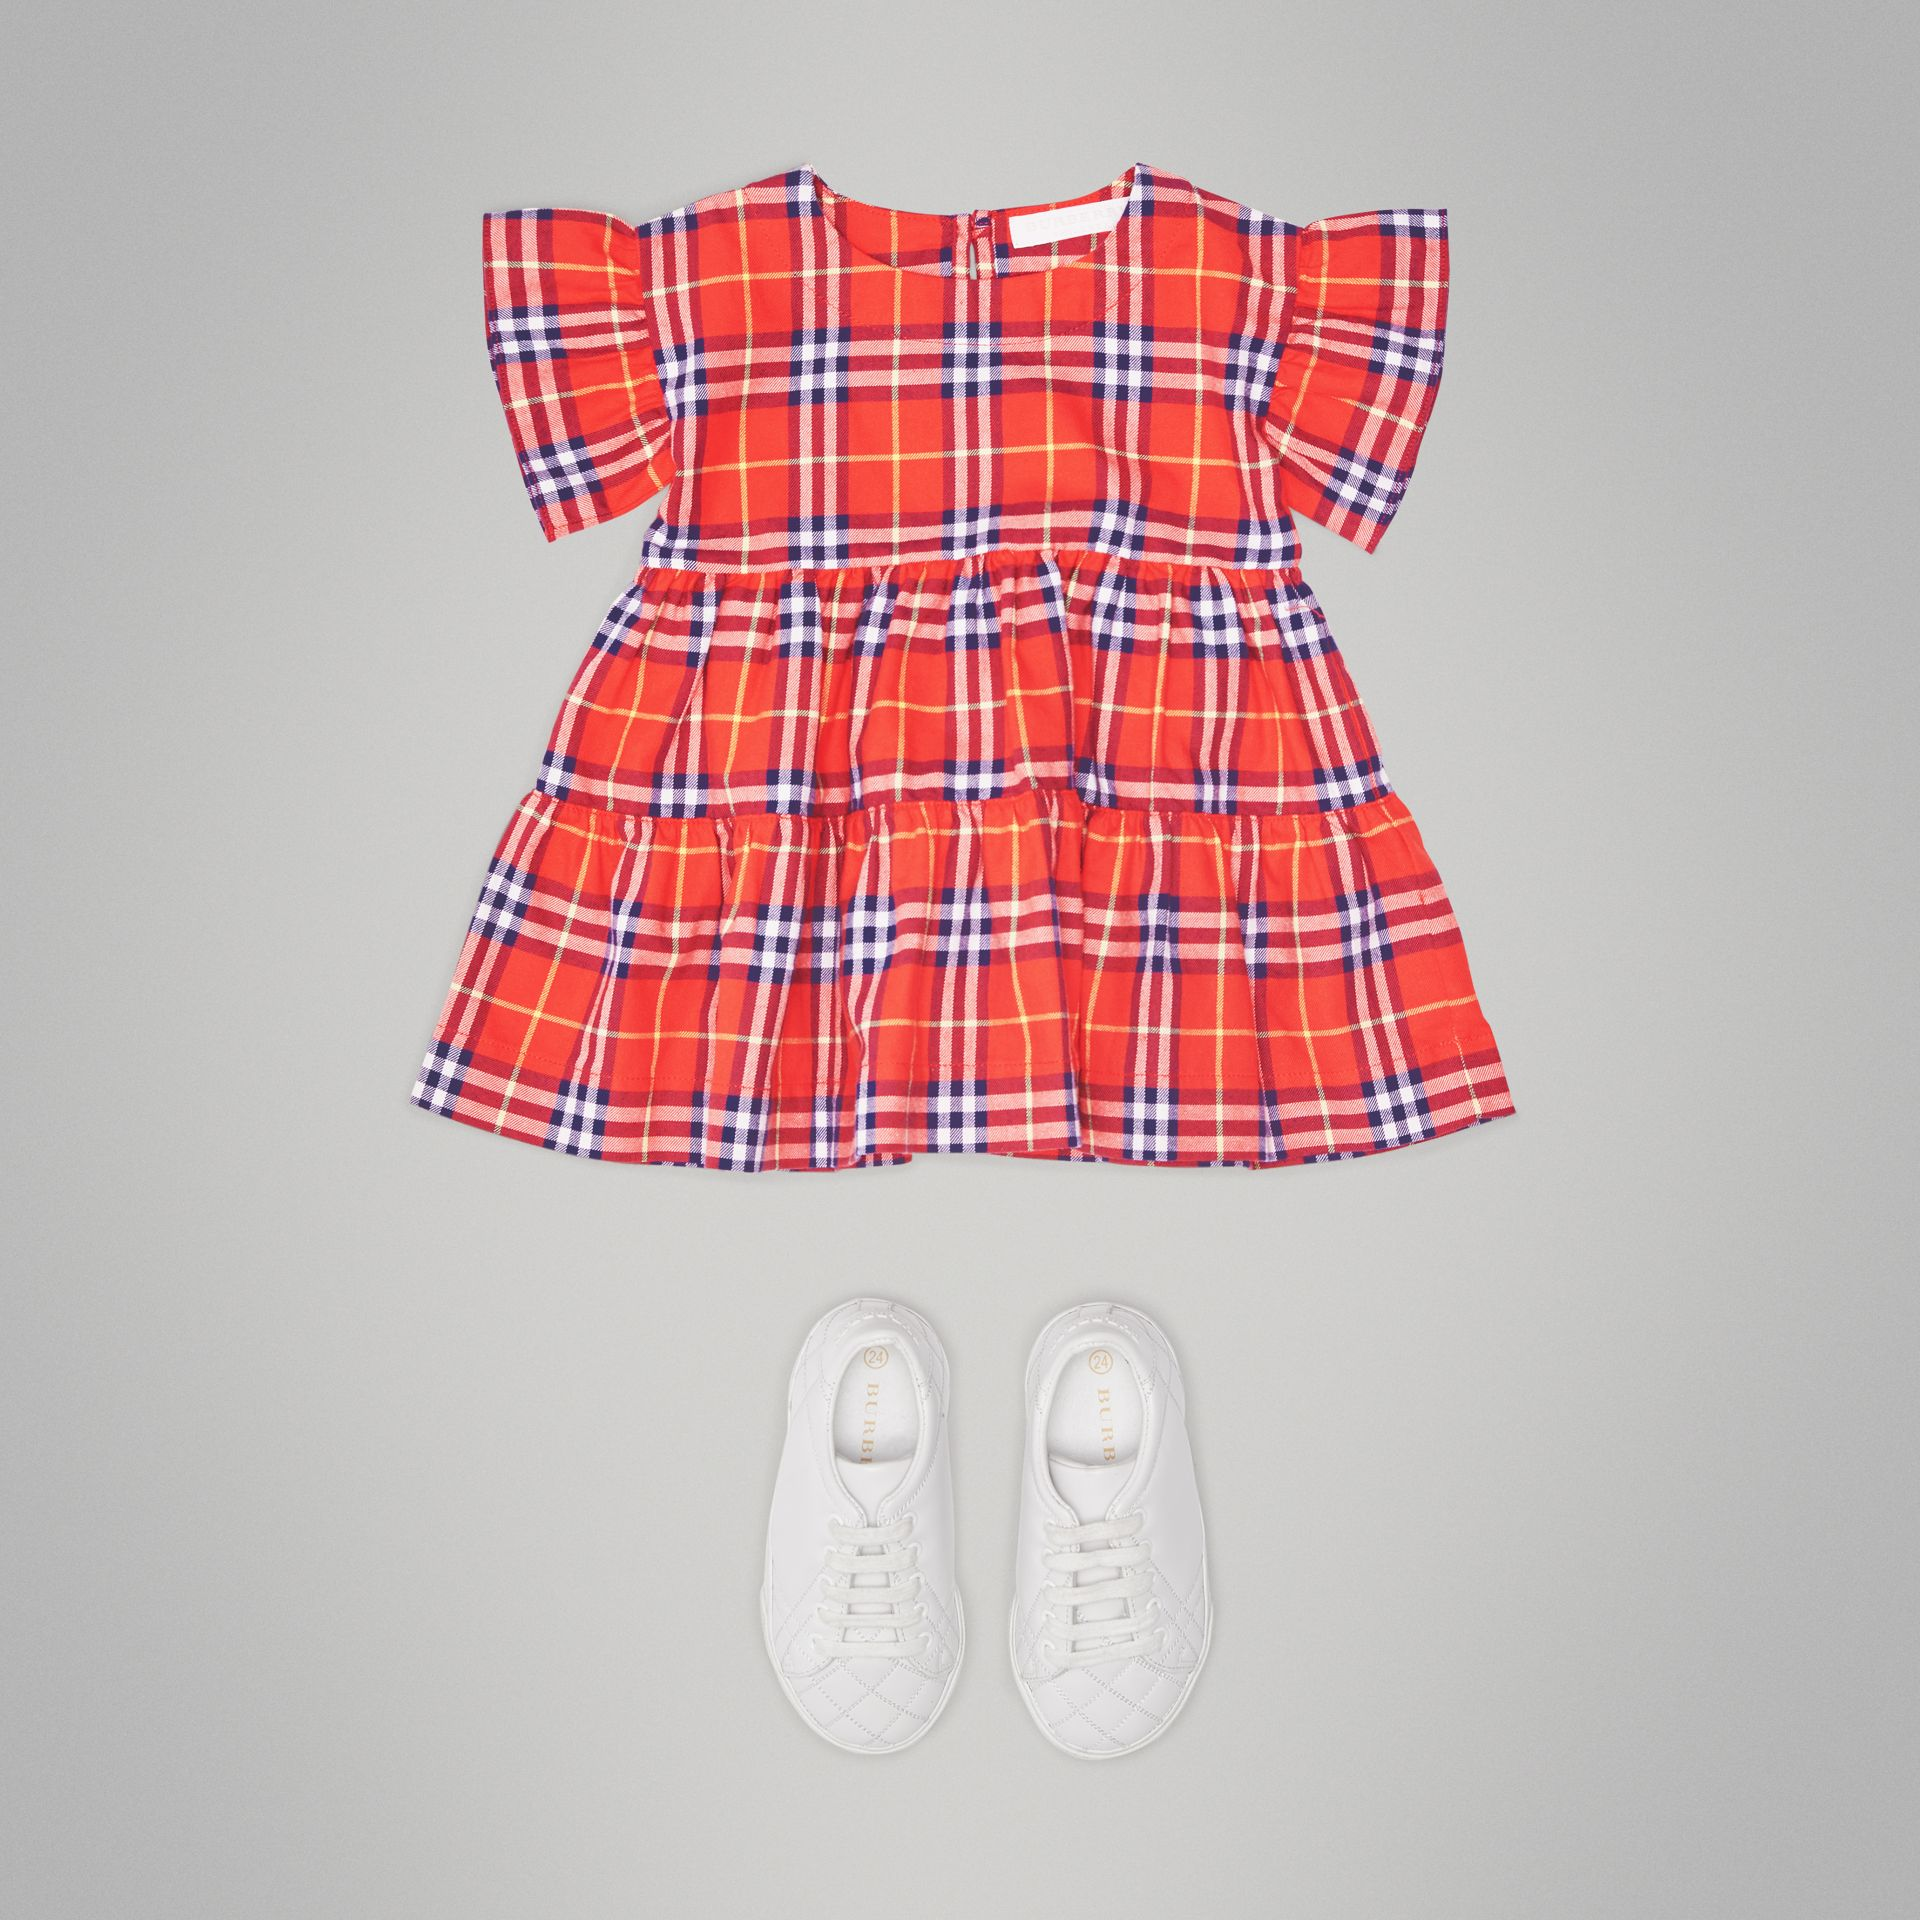 Ruffle Detail Cotton Check Dress in Orange Red - Children | Burberry - gallery image 2